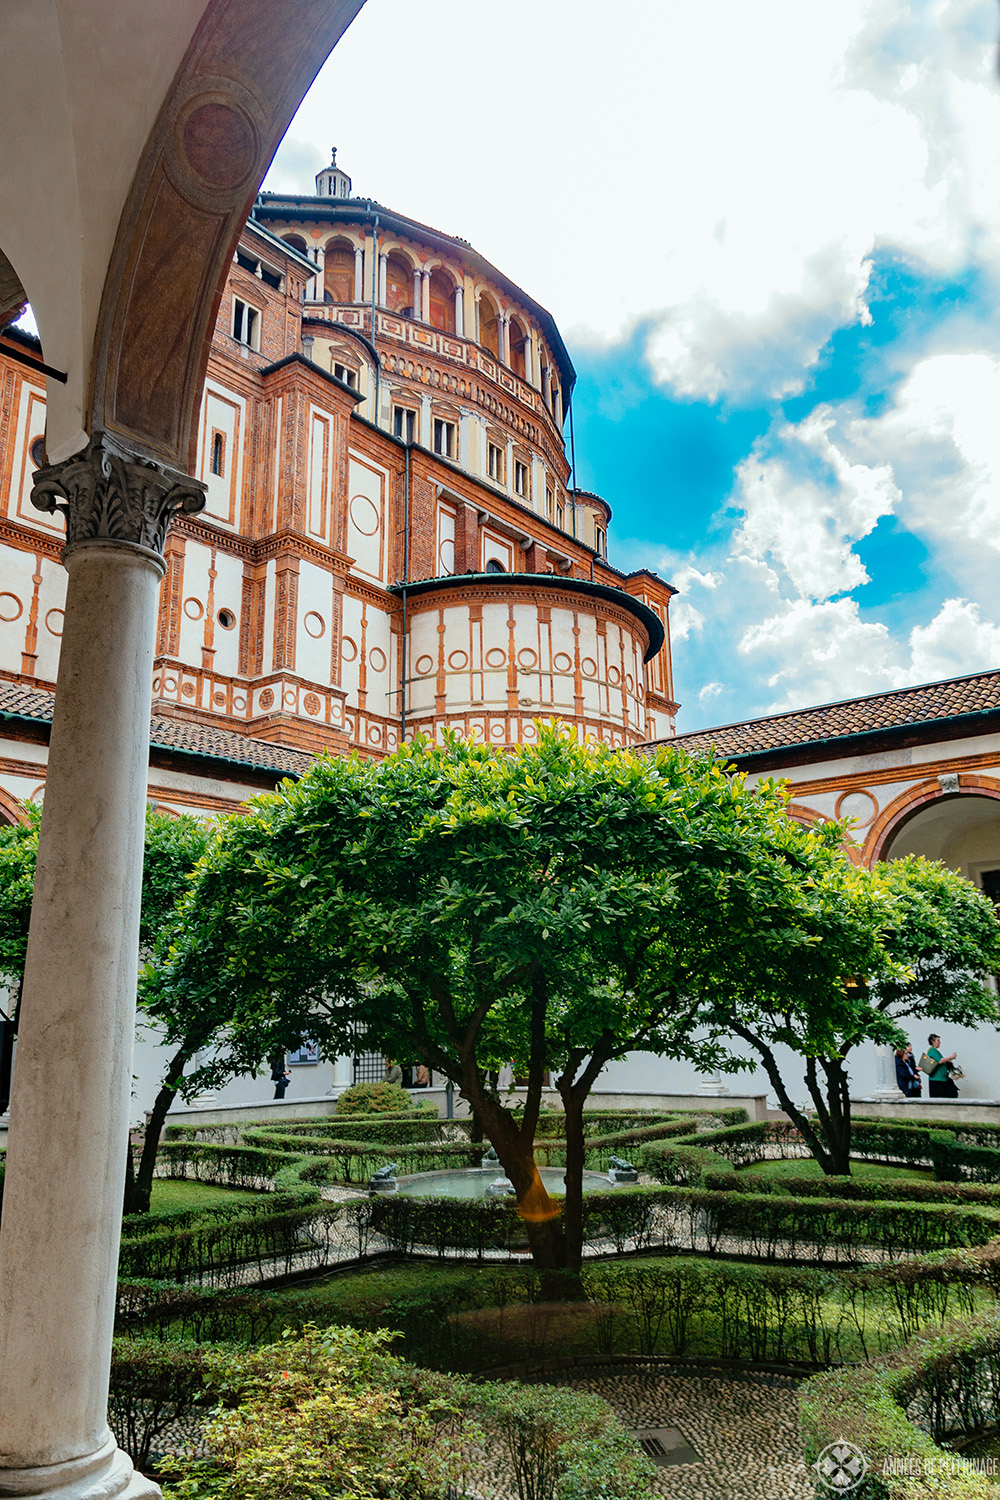 The cloister of Santa Maria delle Grazie in Milan, Italy